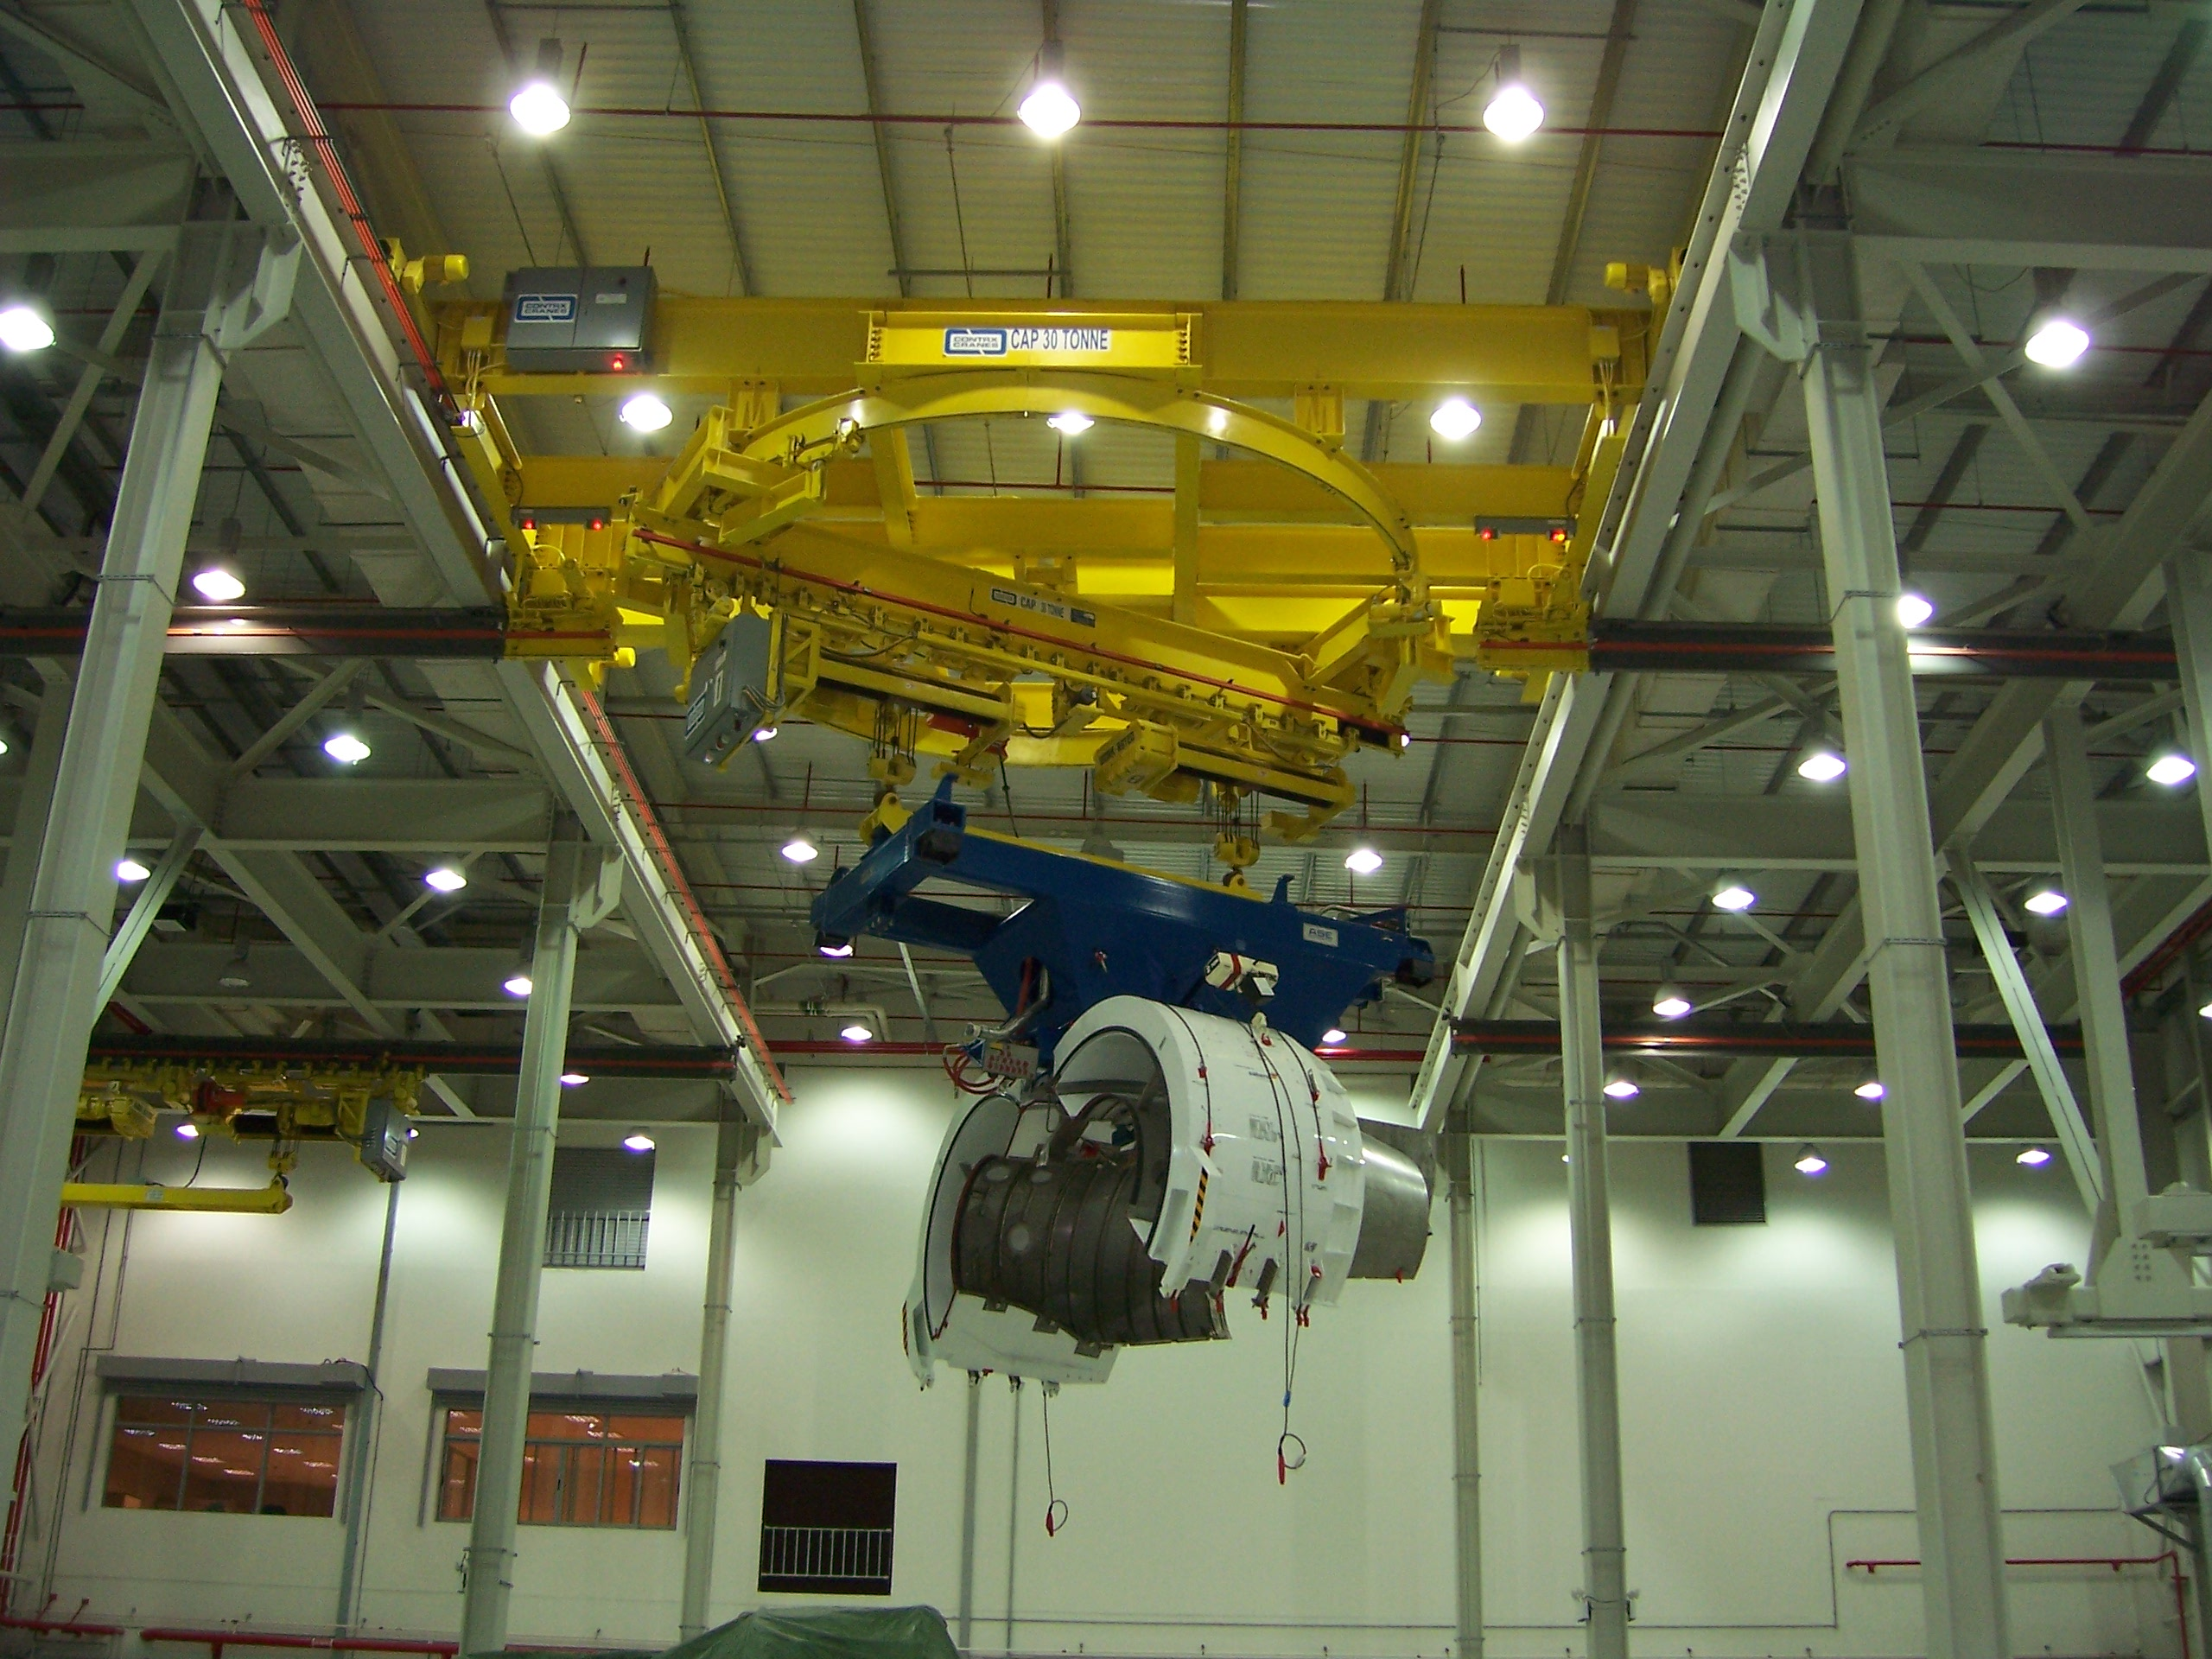 Acco Overhead Crane Solution for Aerospace Manufacturer